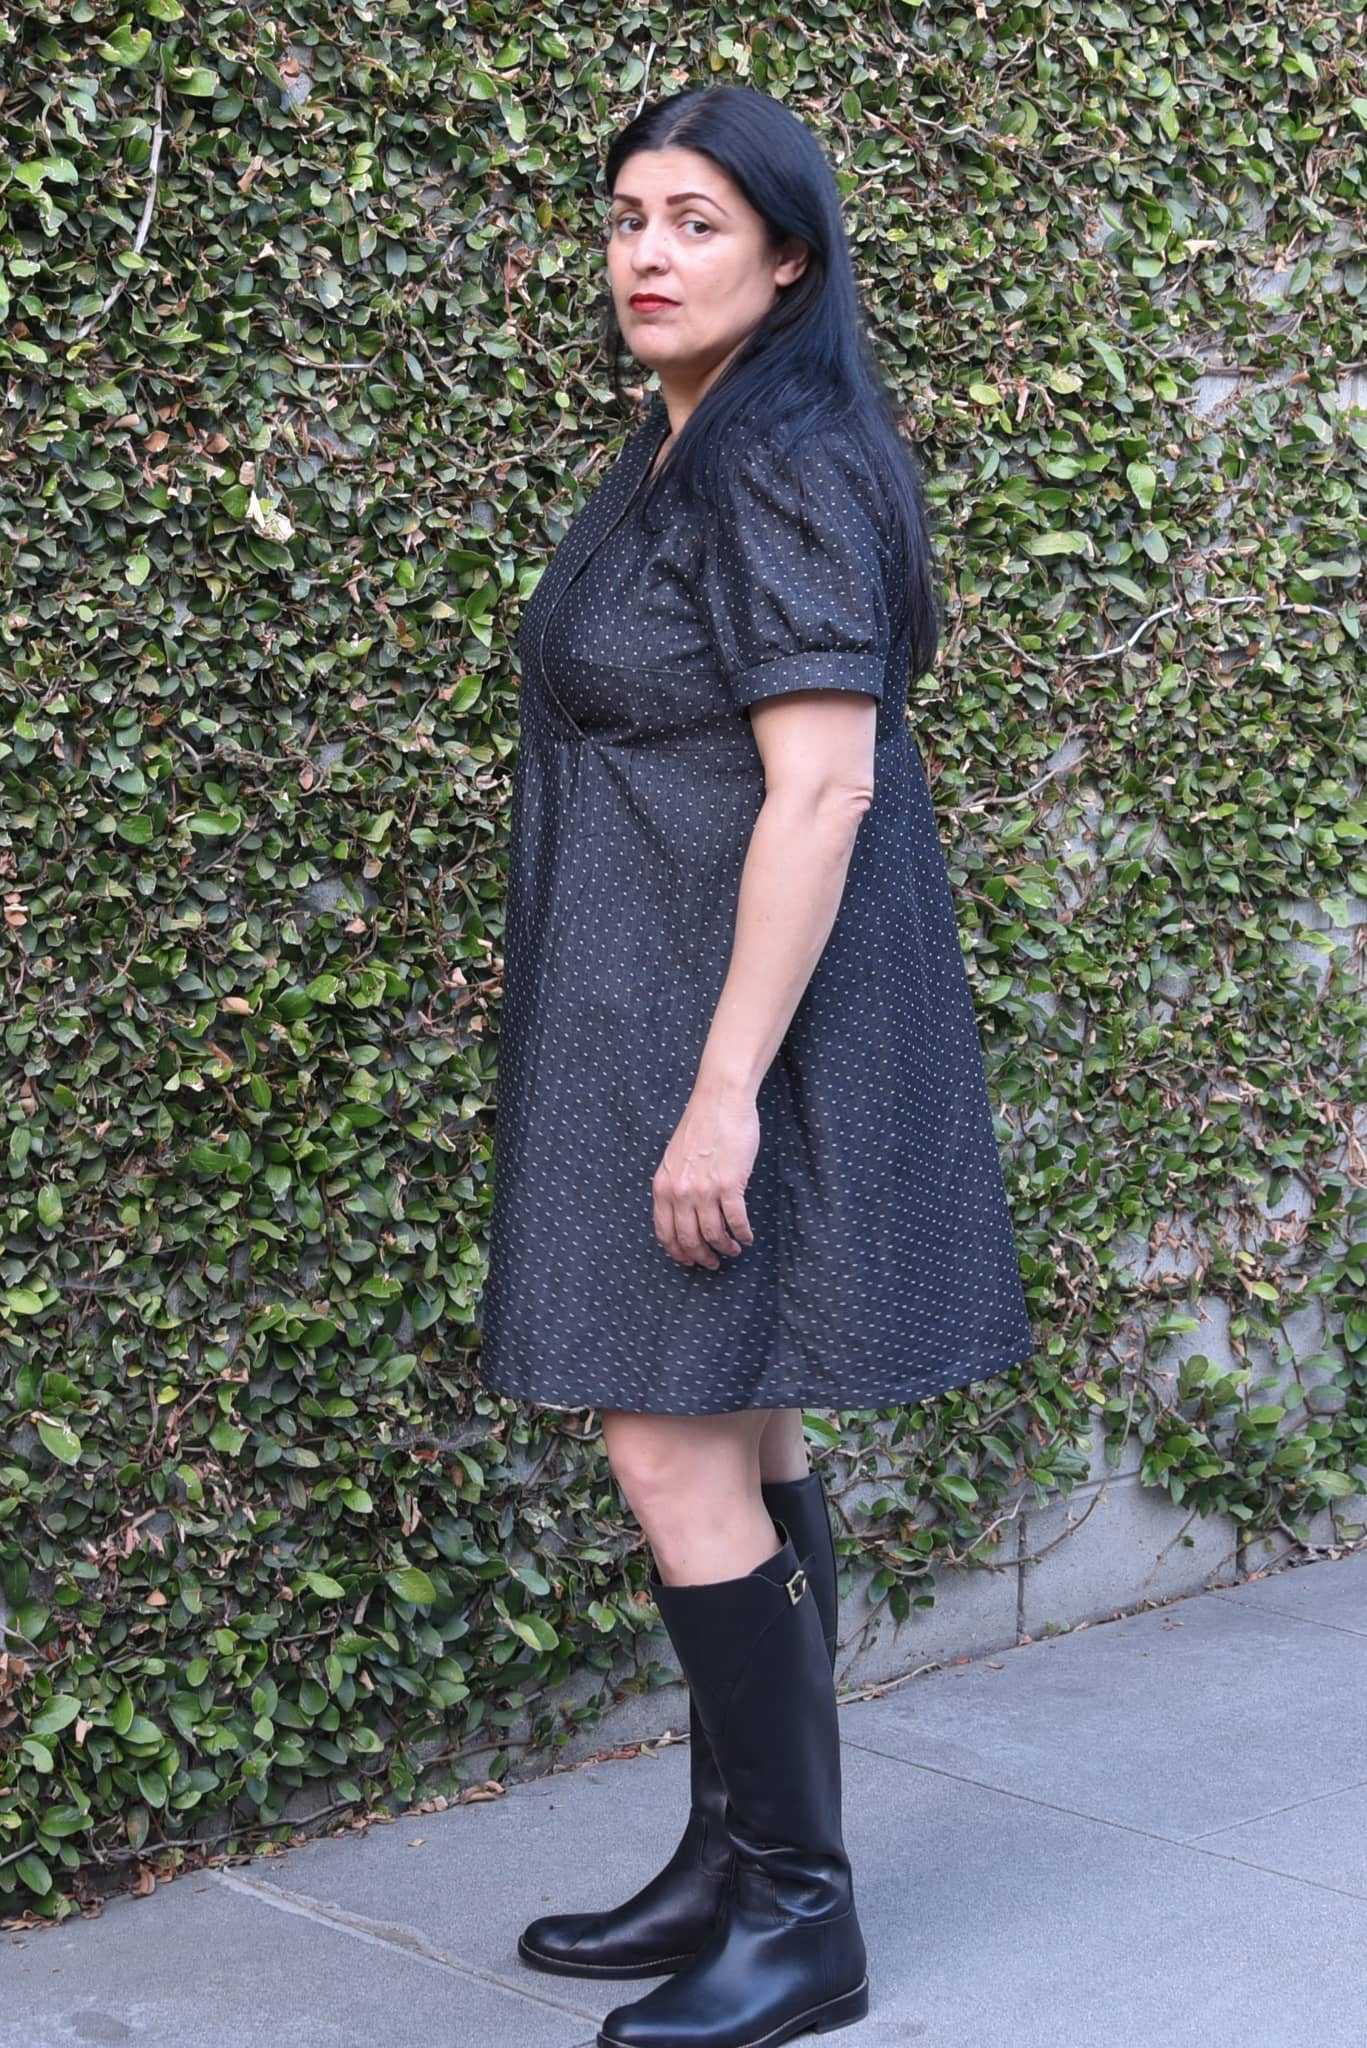 Image of woman standing in front of an ivy-covered wall wearing a fauxwrap dress in a black cotton chambray with white polka dots.